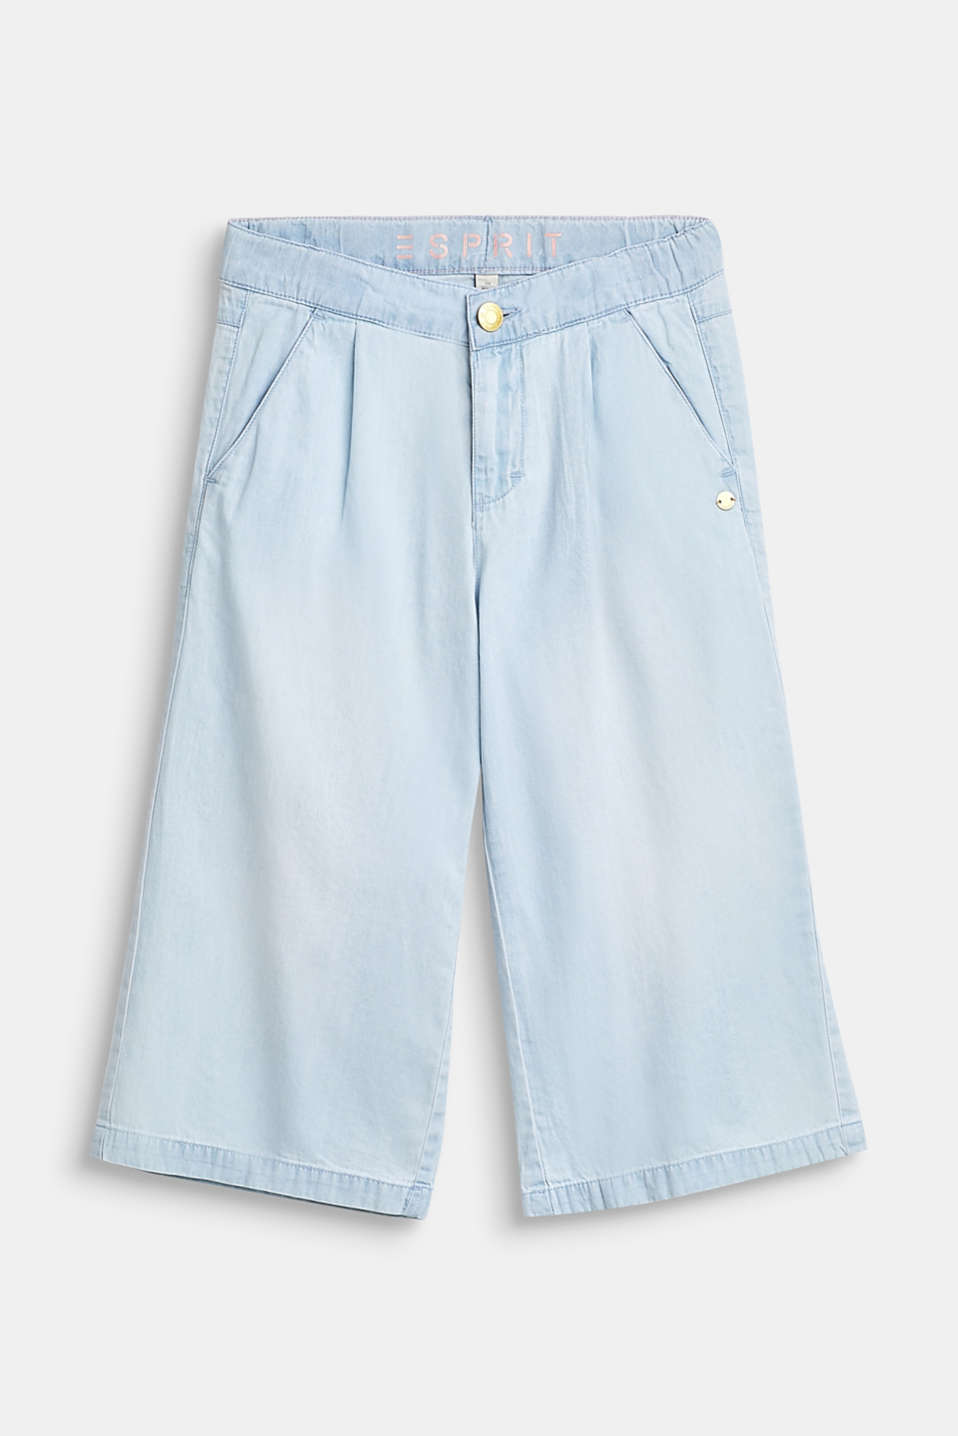 Esprit - Lightweight denim culottes, 100% cotton